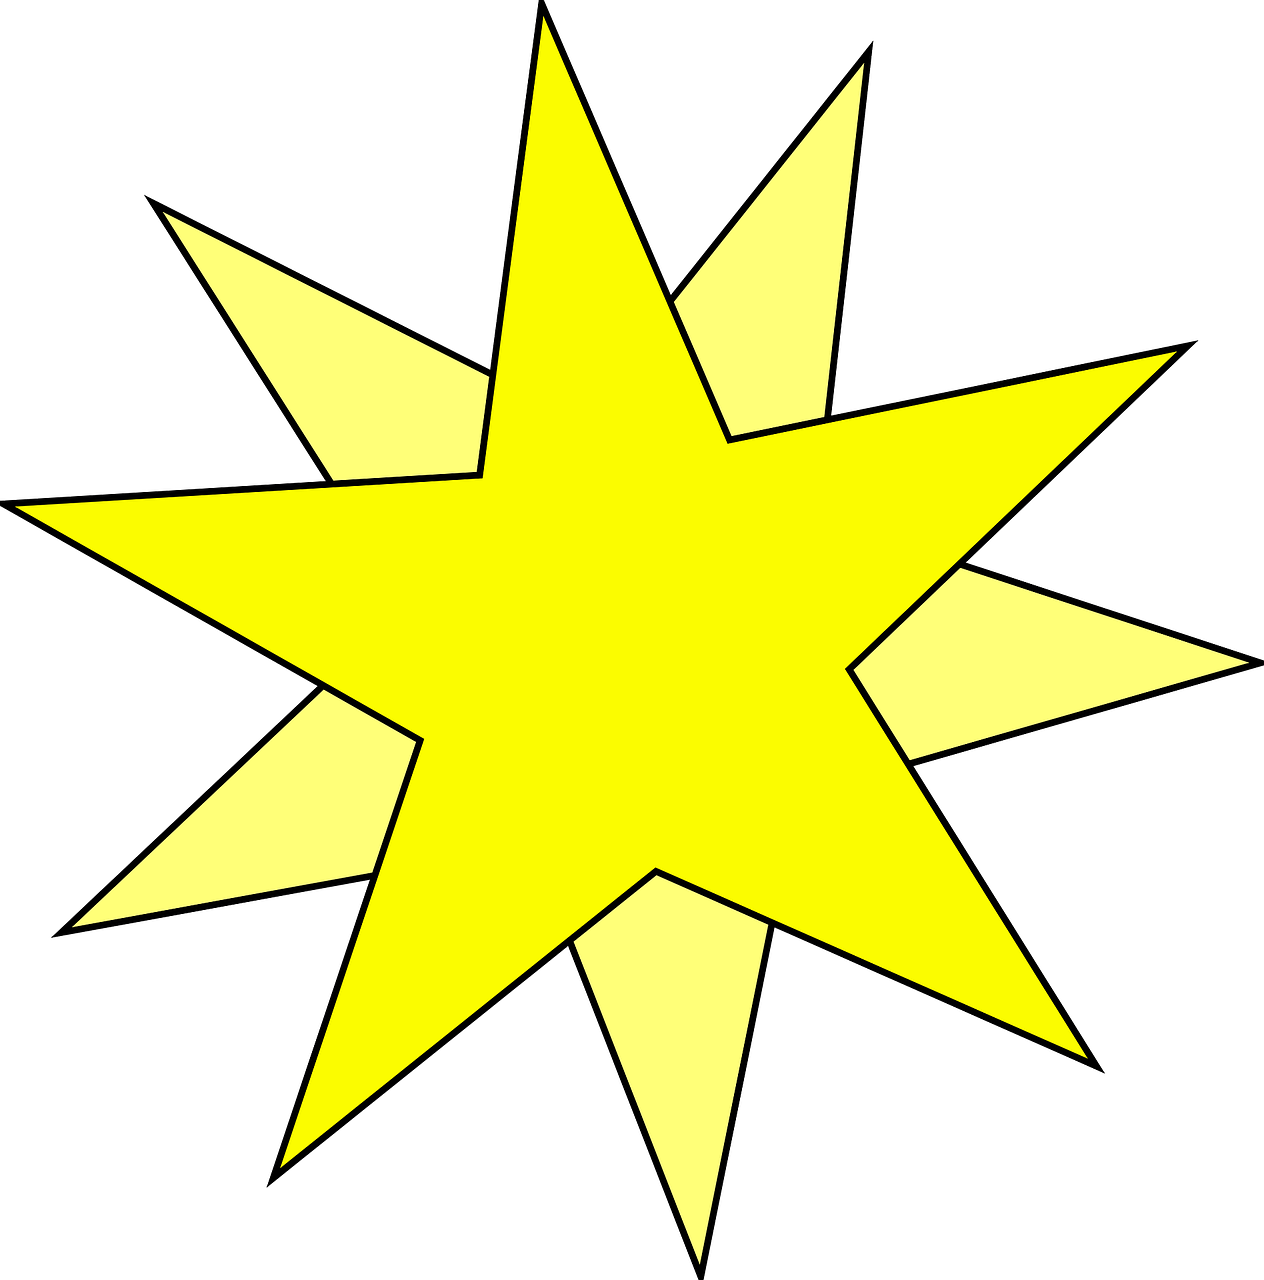 star,design,double,inlaid,pattern,yellow,ornamental,free vector graphics,free pictures, free photos, free images, royalty free, free illustrations, public domain